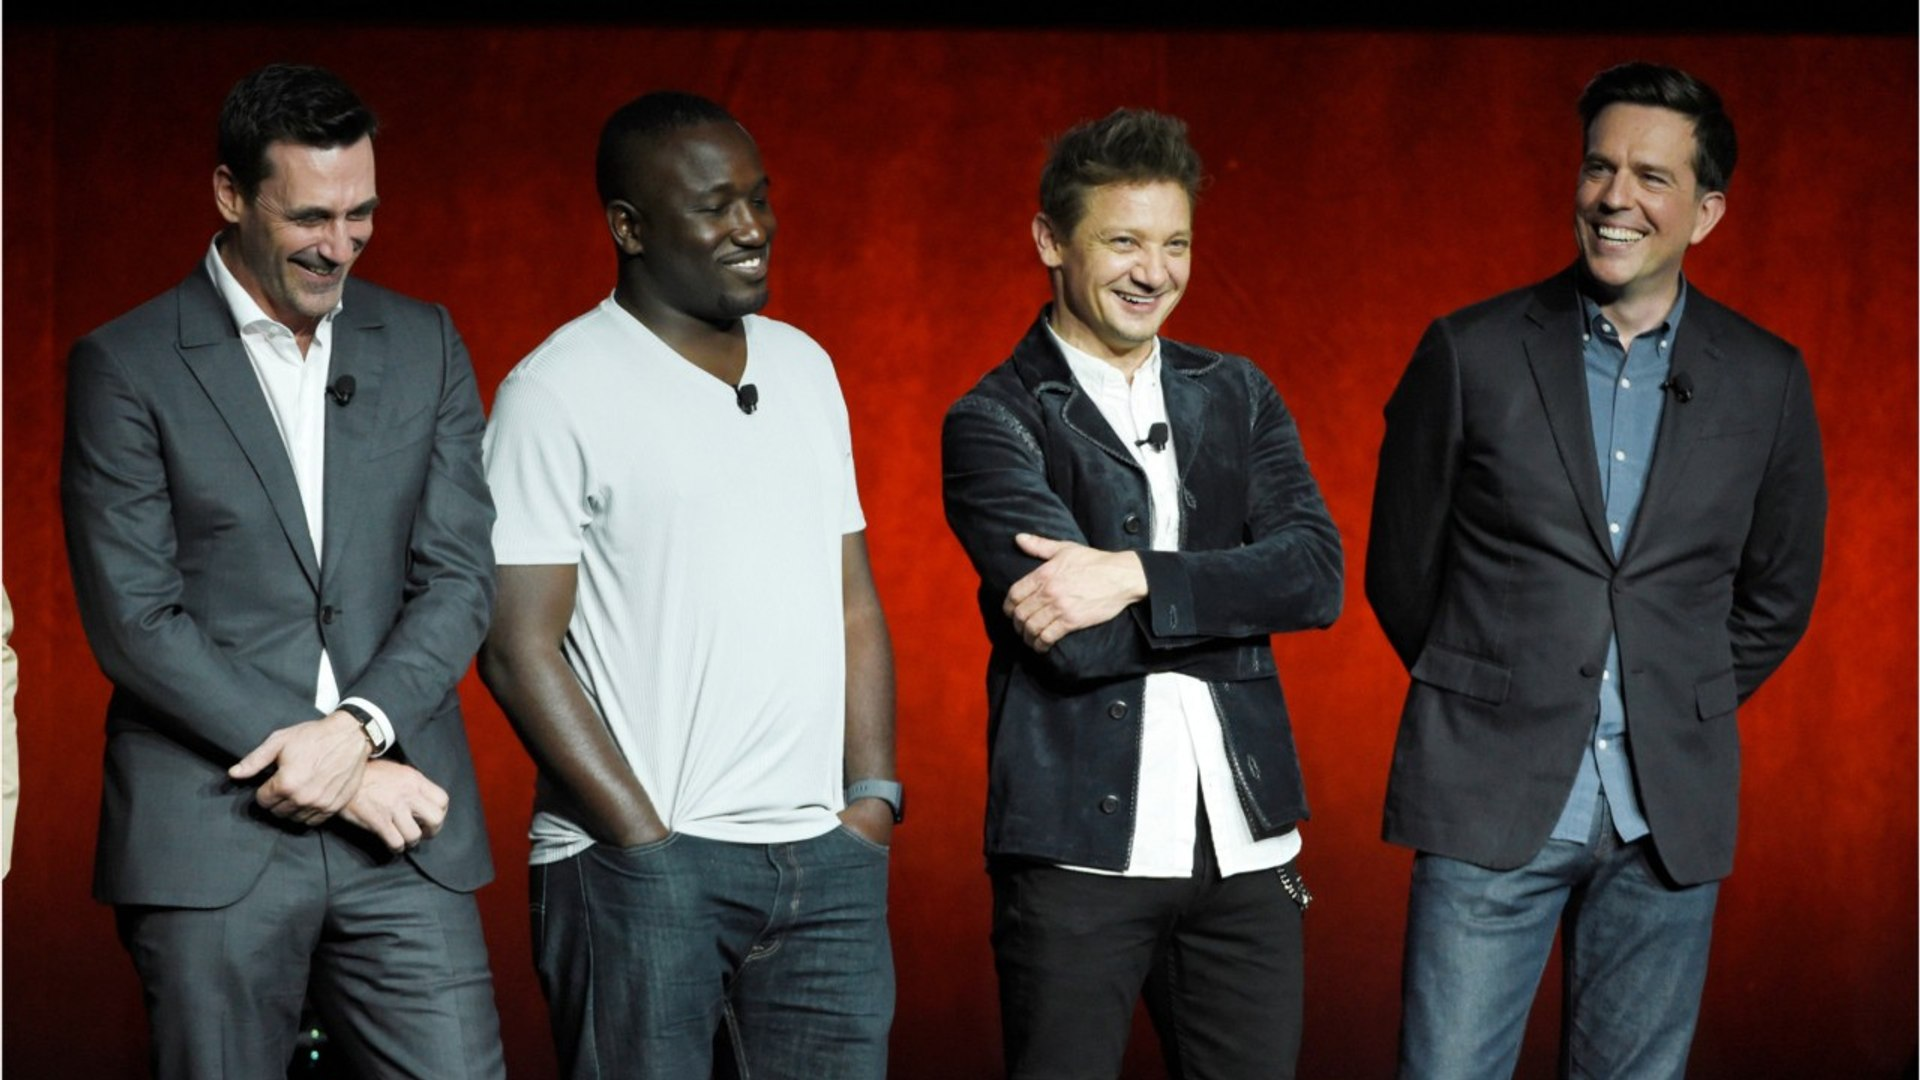 Jeremy Renner's Broken Arms Digitally Removed From Tag